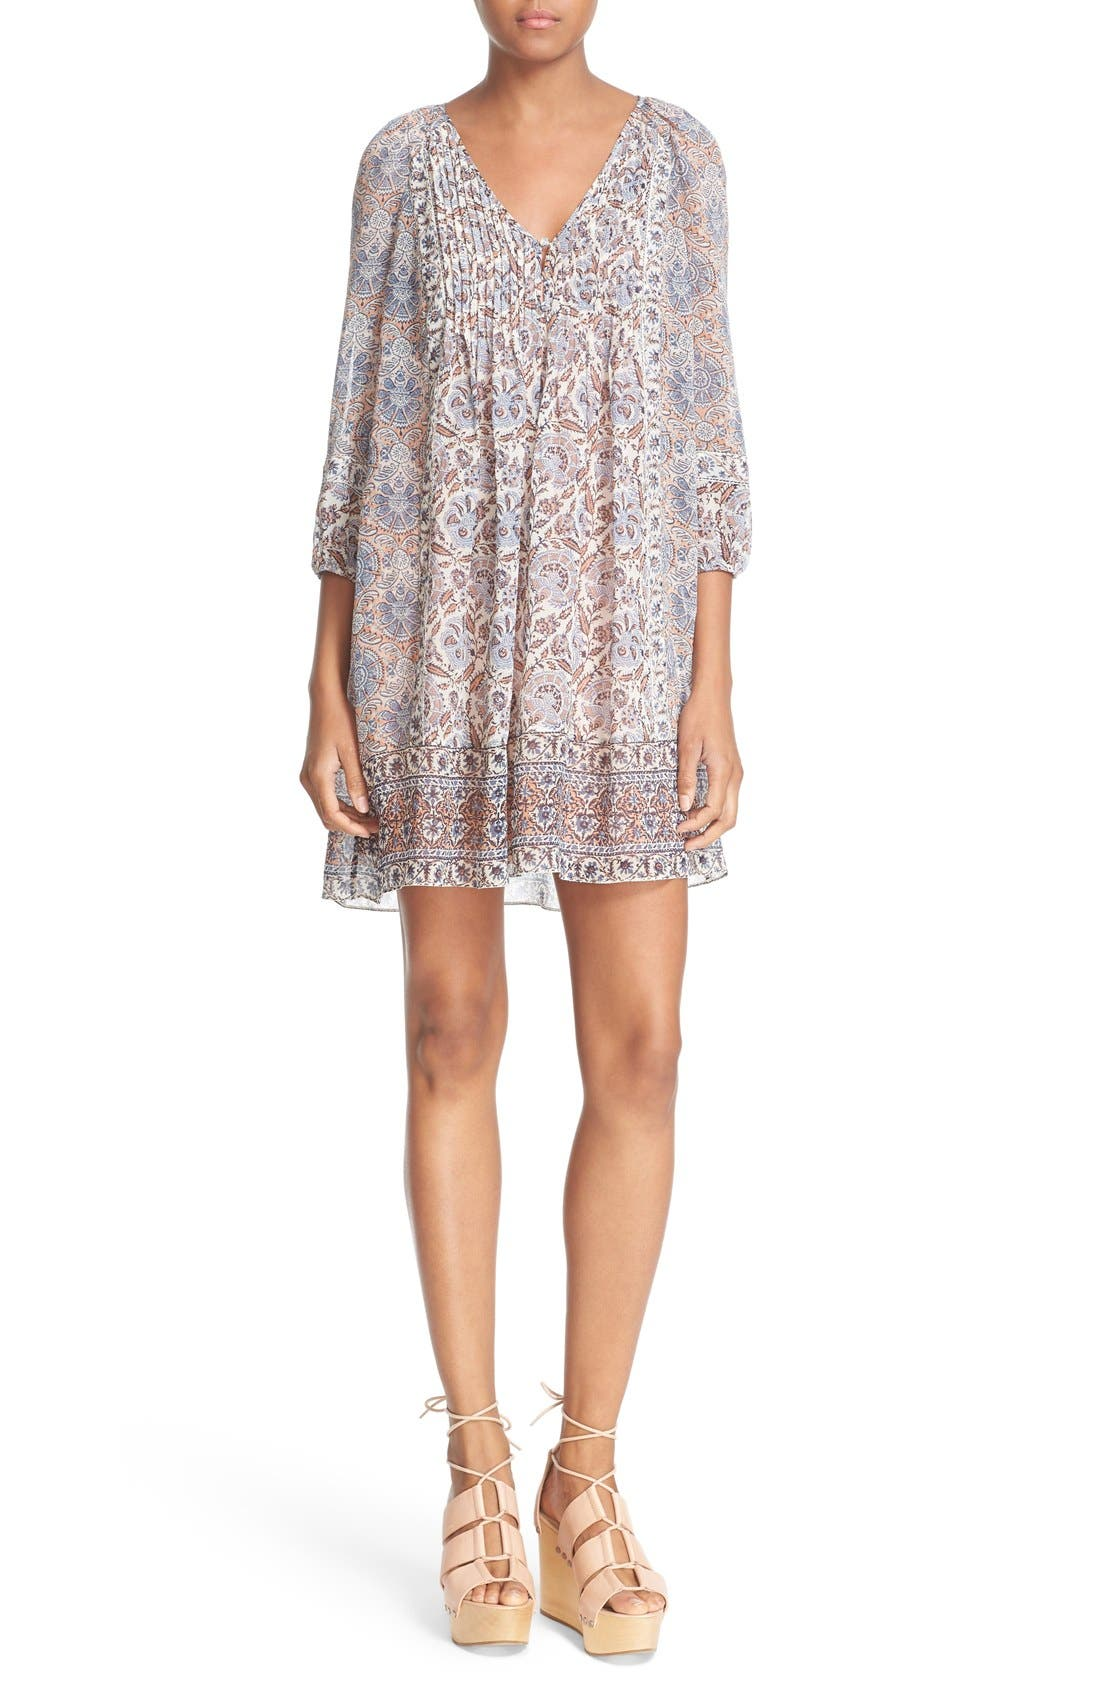 Alternate Image 1 Selected - Joie 'Foxley' Floral Print Silk Peasant Dress